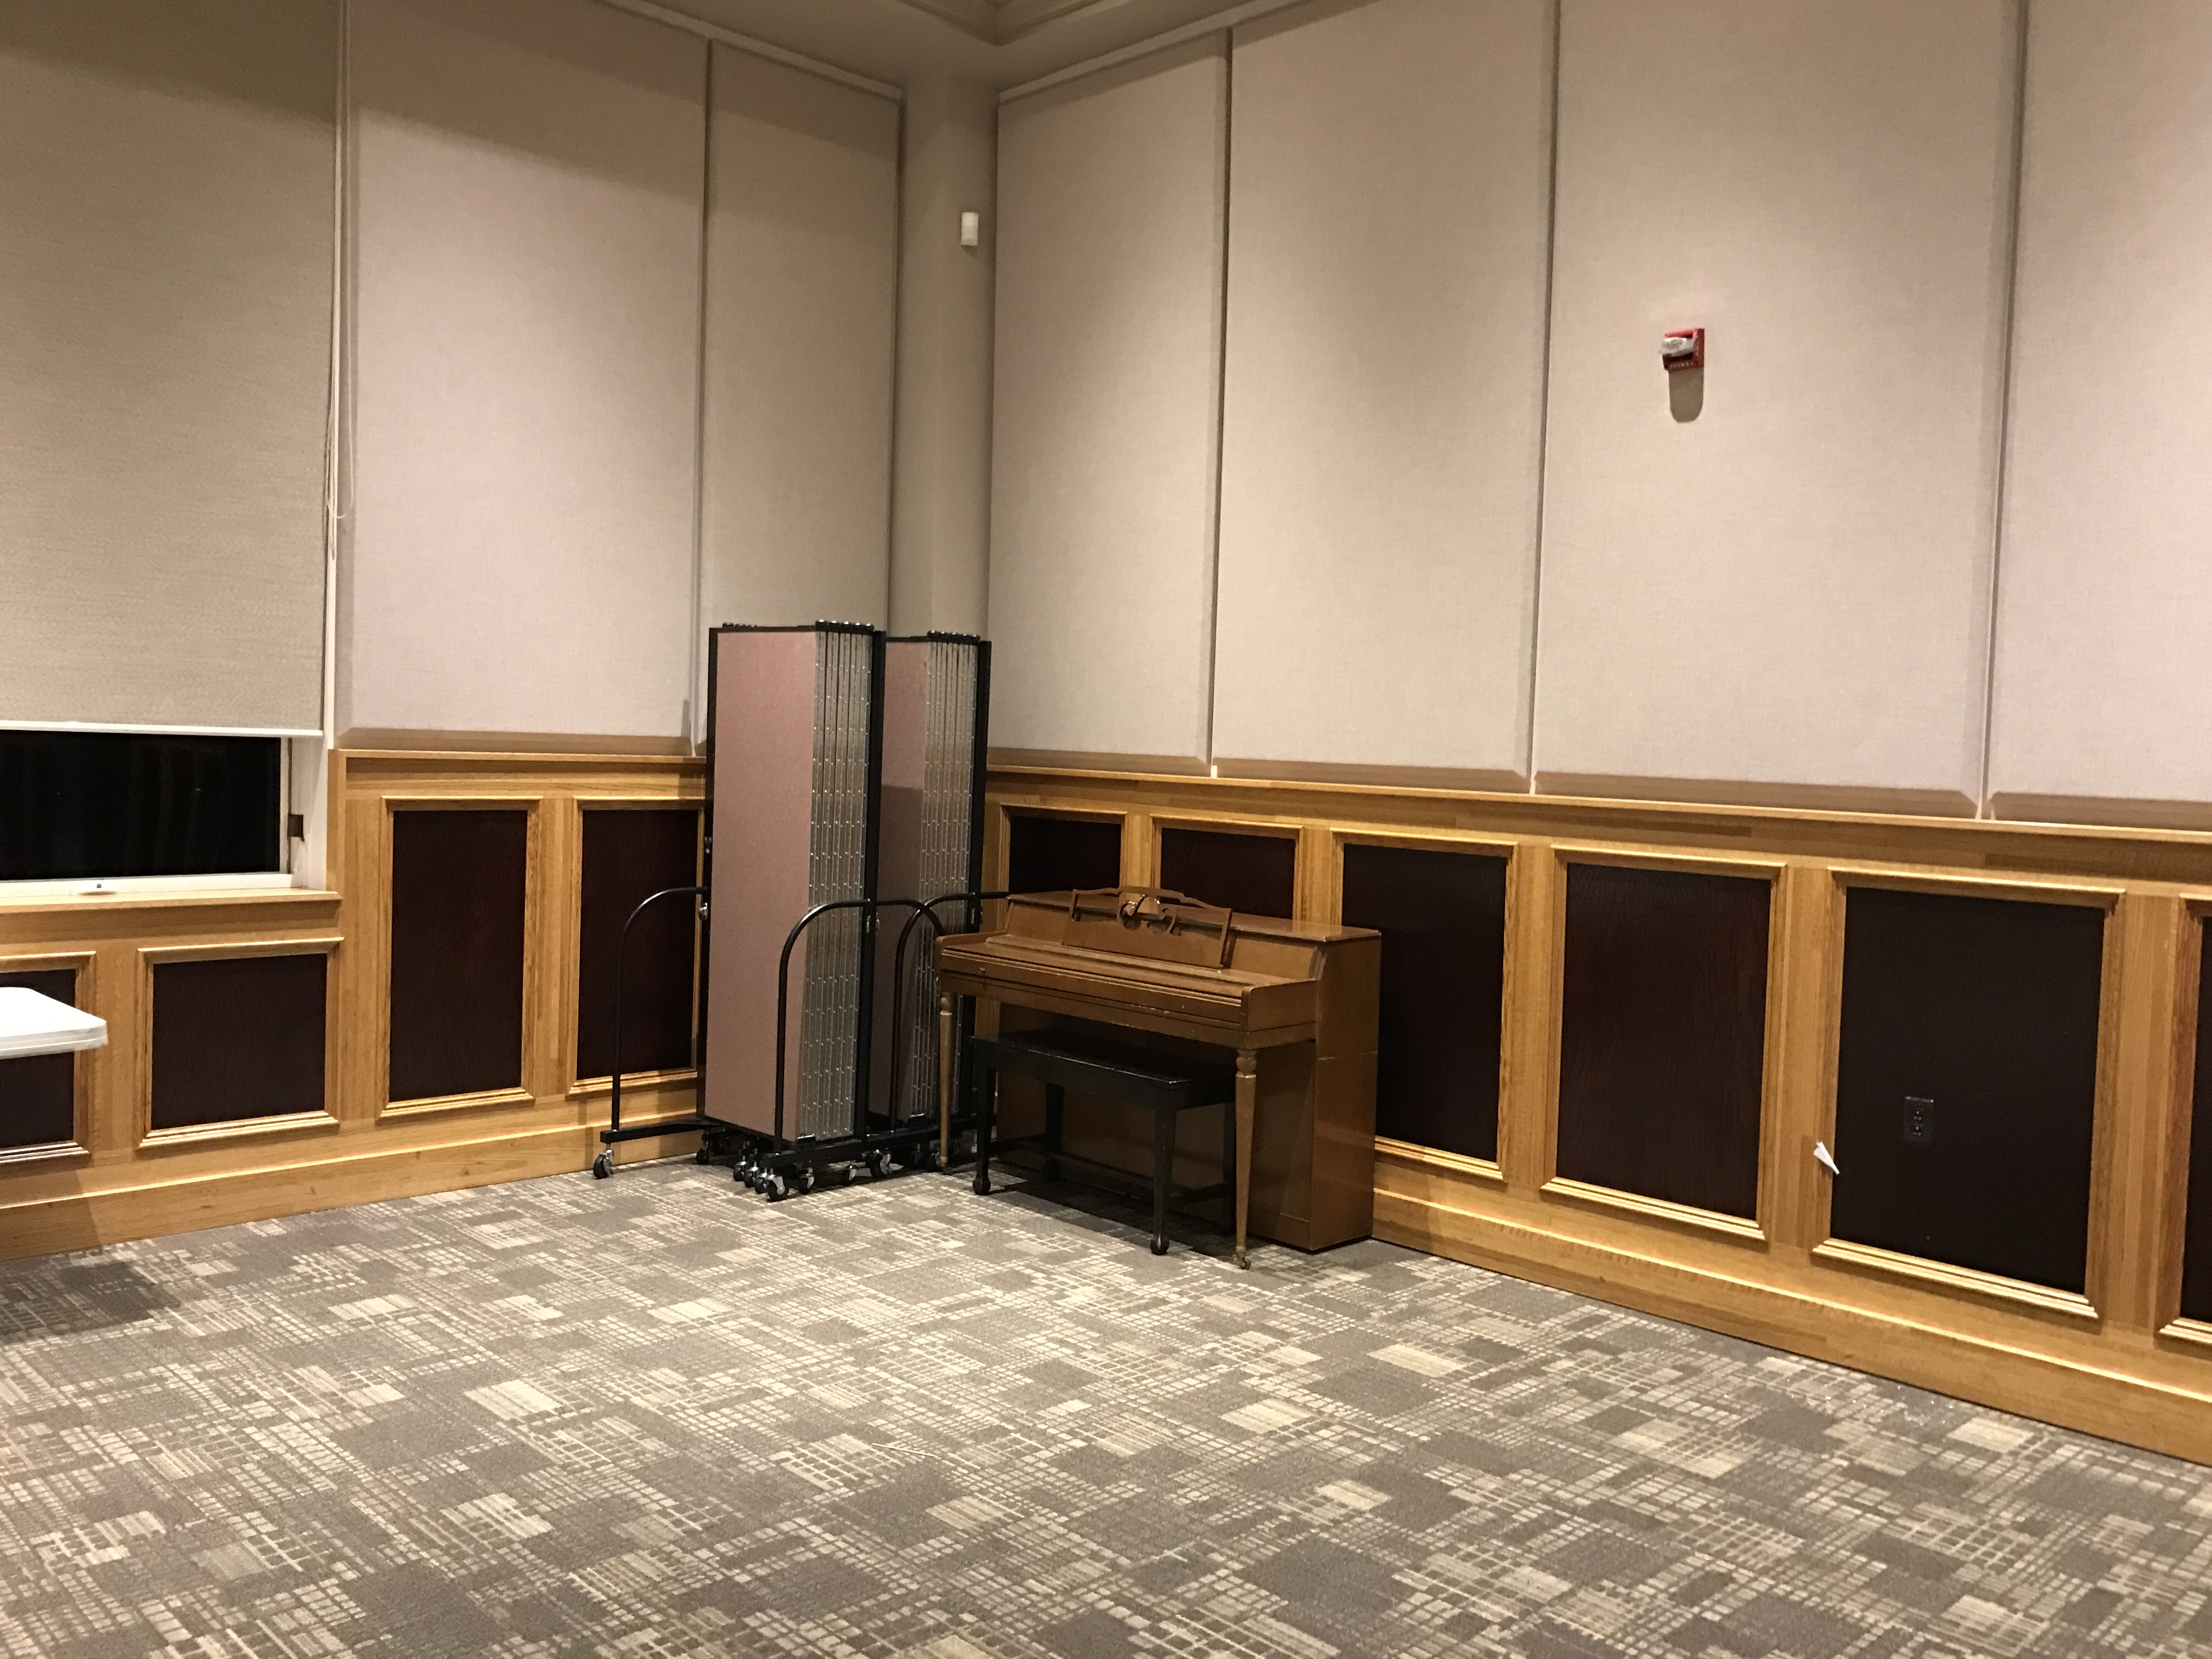 Church room divider stores compactly